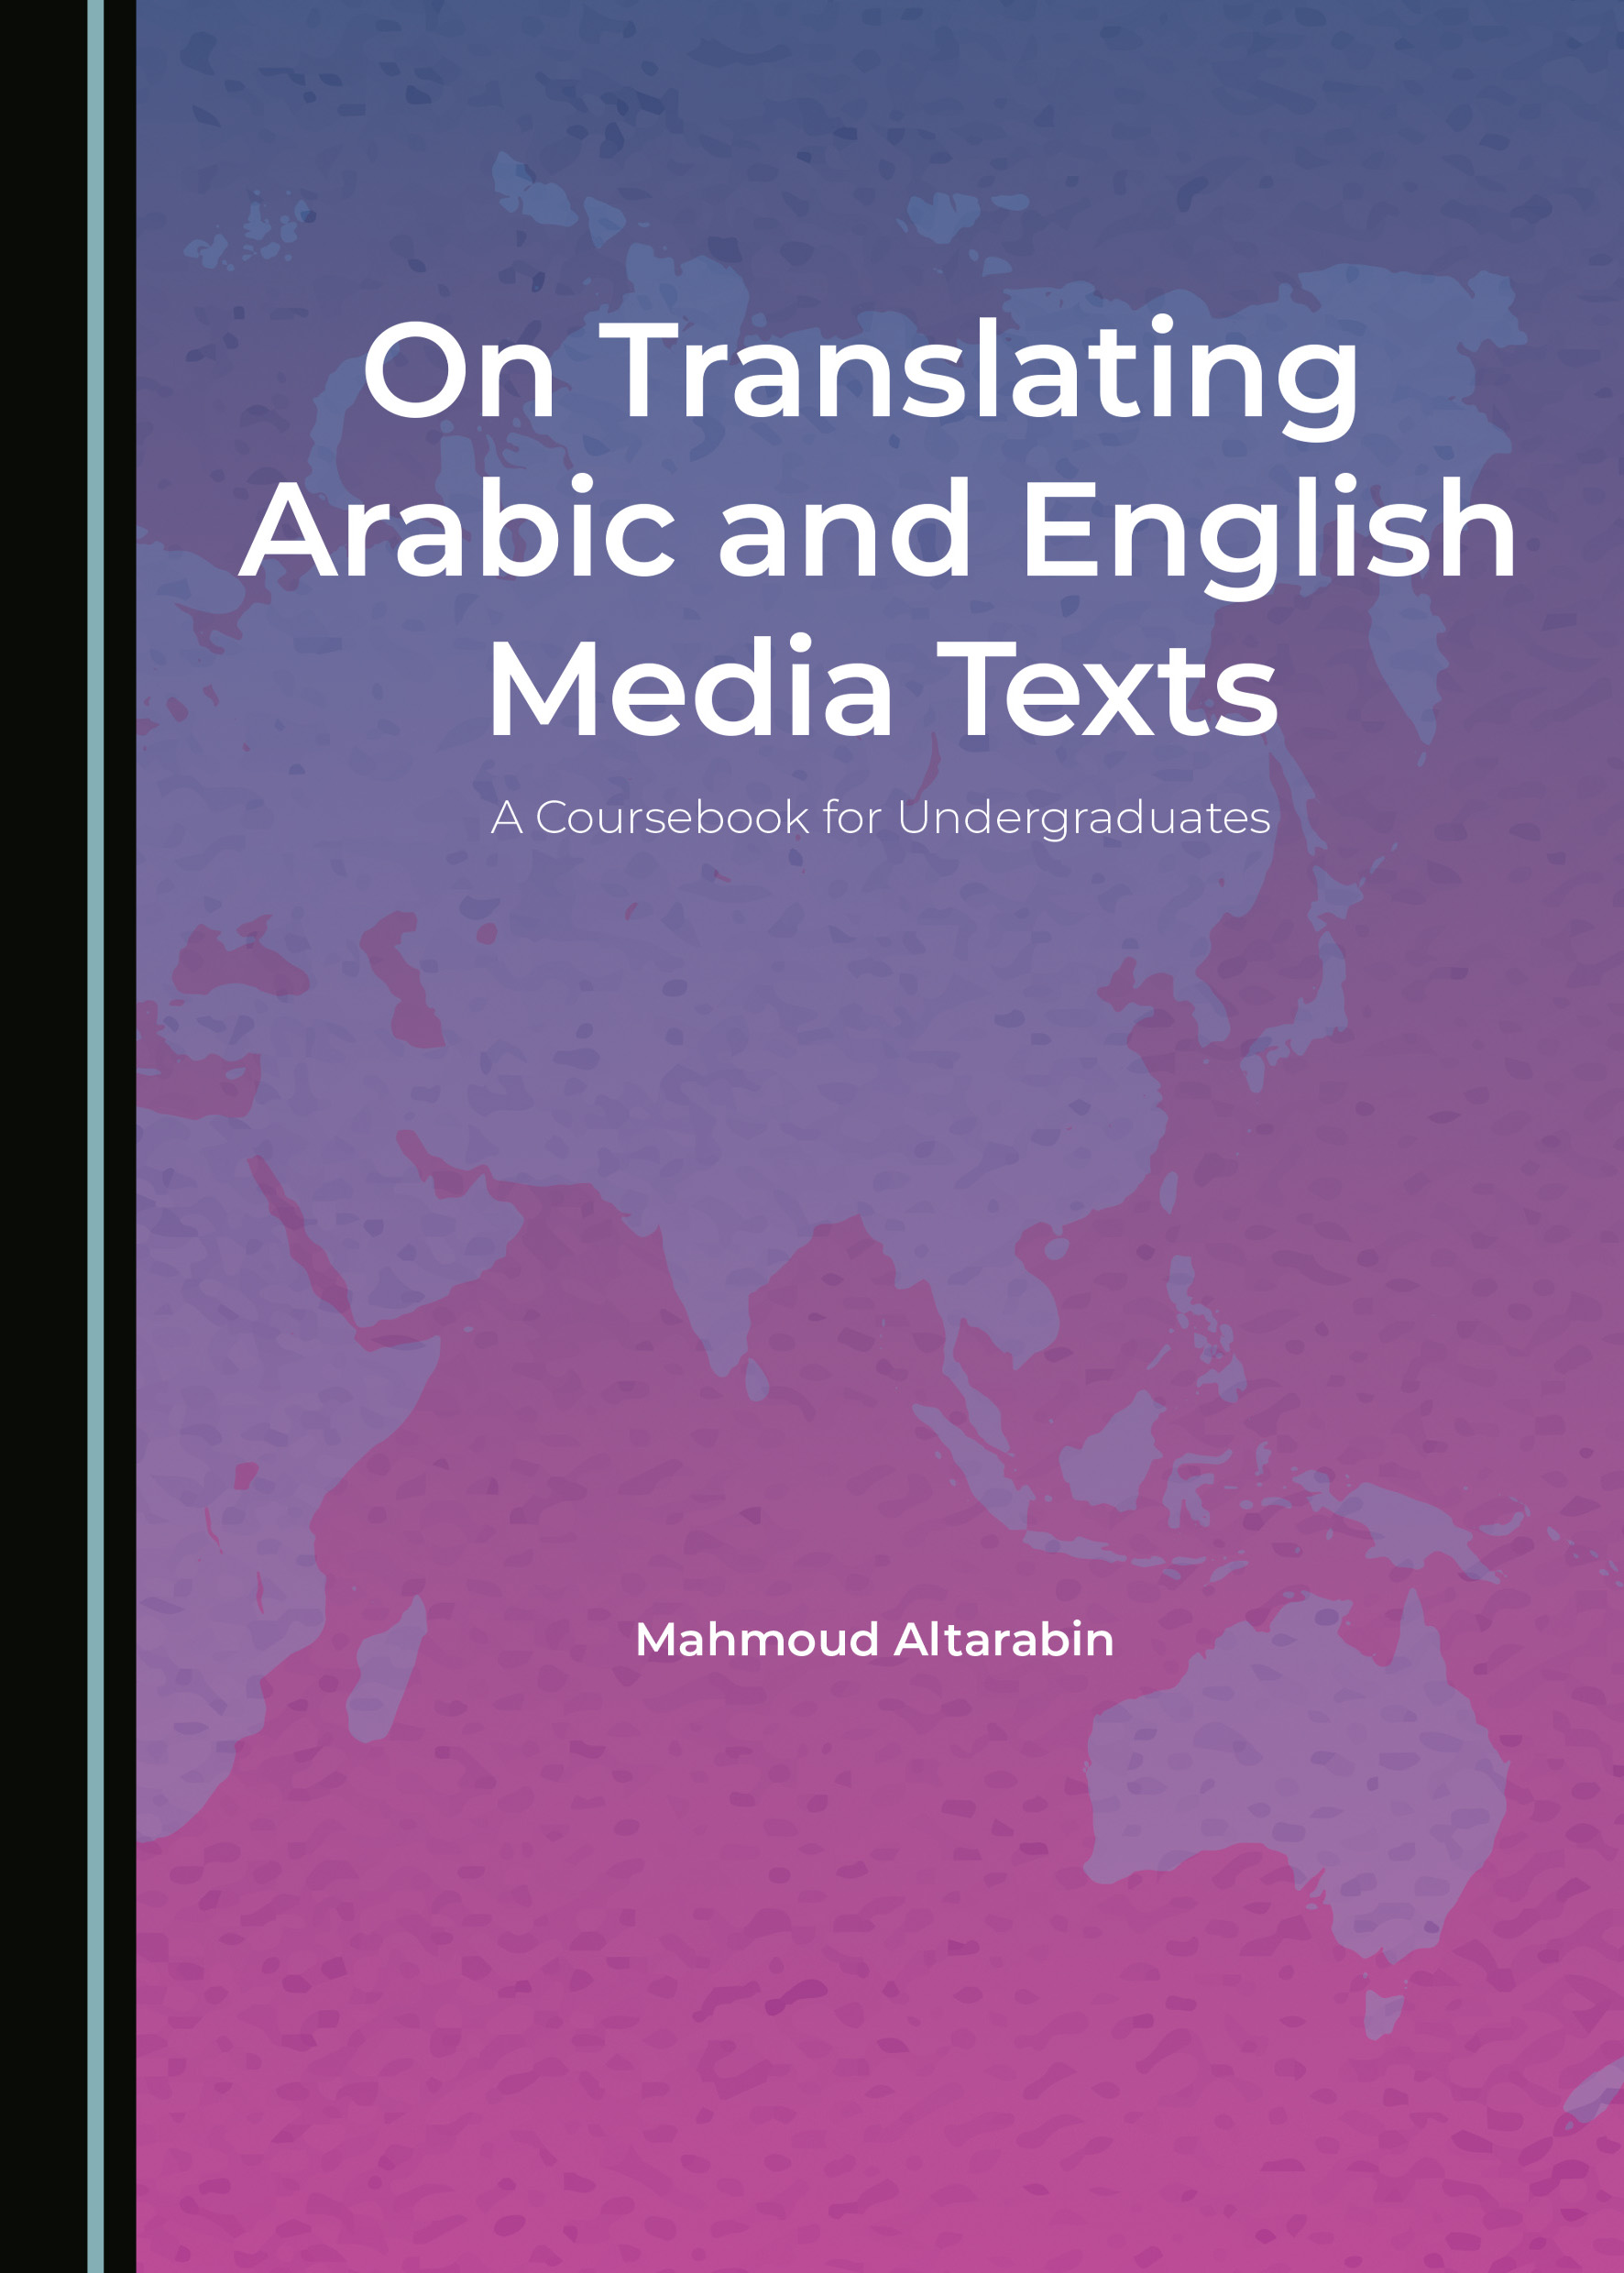 On Translating Arabic and English Media Texts: A Coursebook for Undergraduates